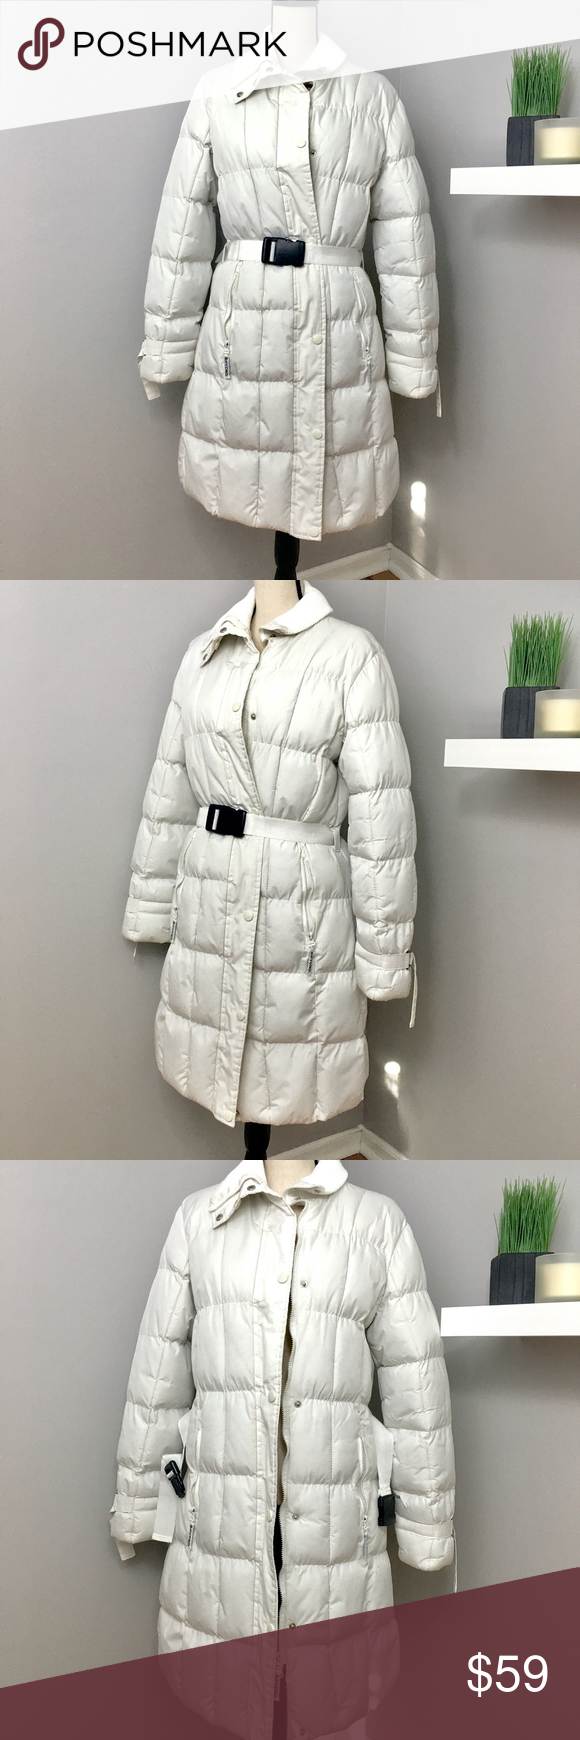 White Puffer Coat With Zipper And Clasps White Puffer Coat Puffer Coat Long Puffer Coat [ 1740 x 580 Pixel ]